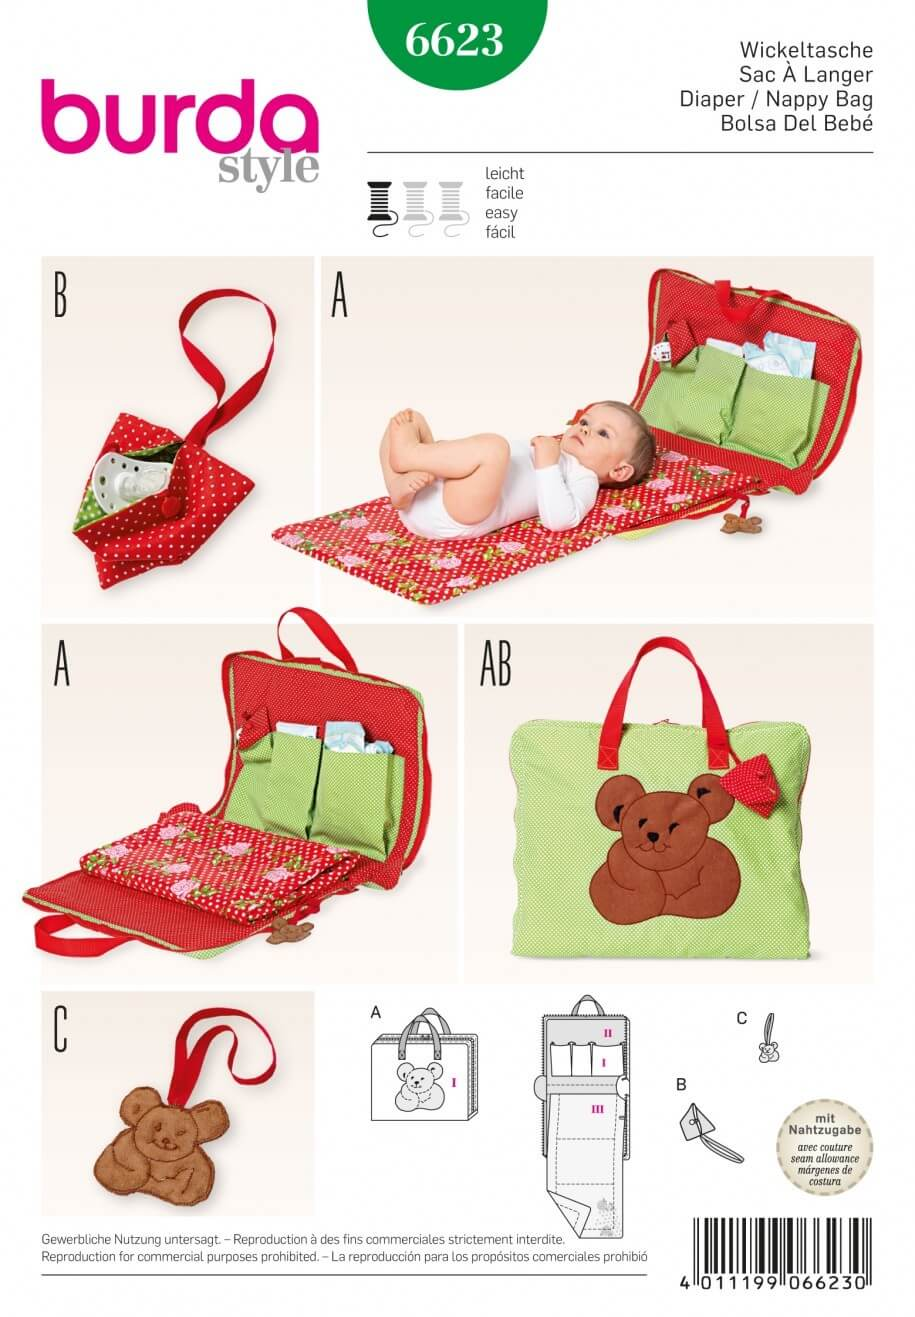 Burda Style Babies Nappy Diaper Bag Dress Sewing Pattern 6623